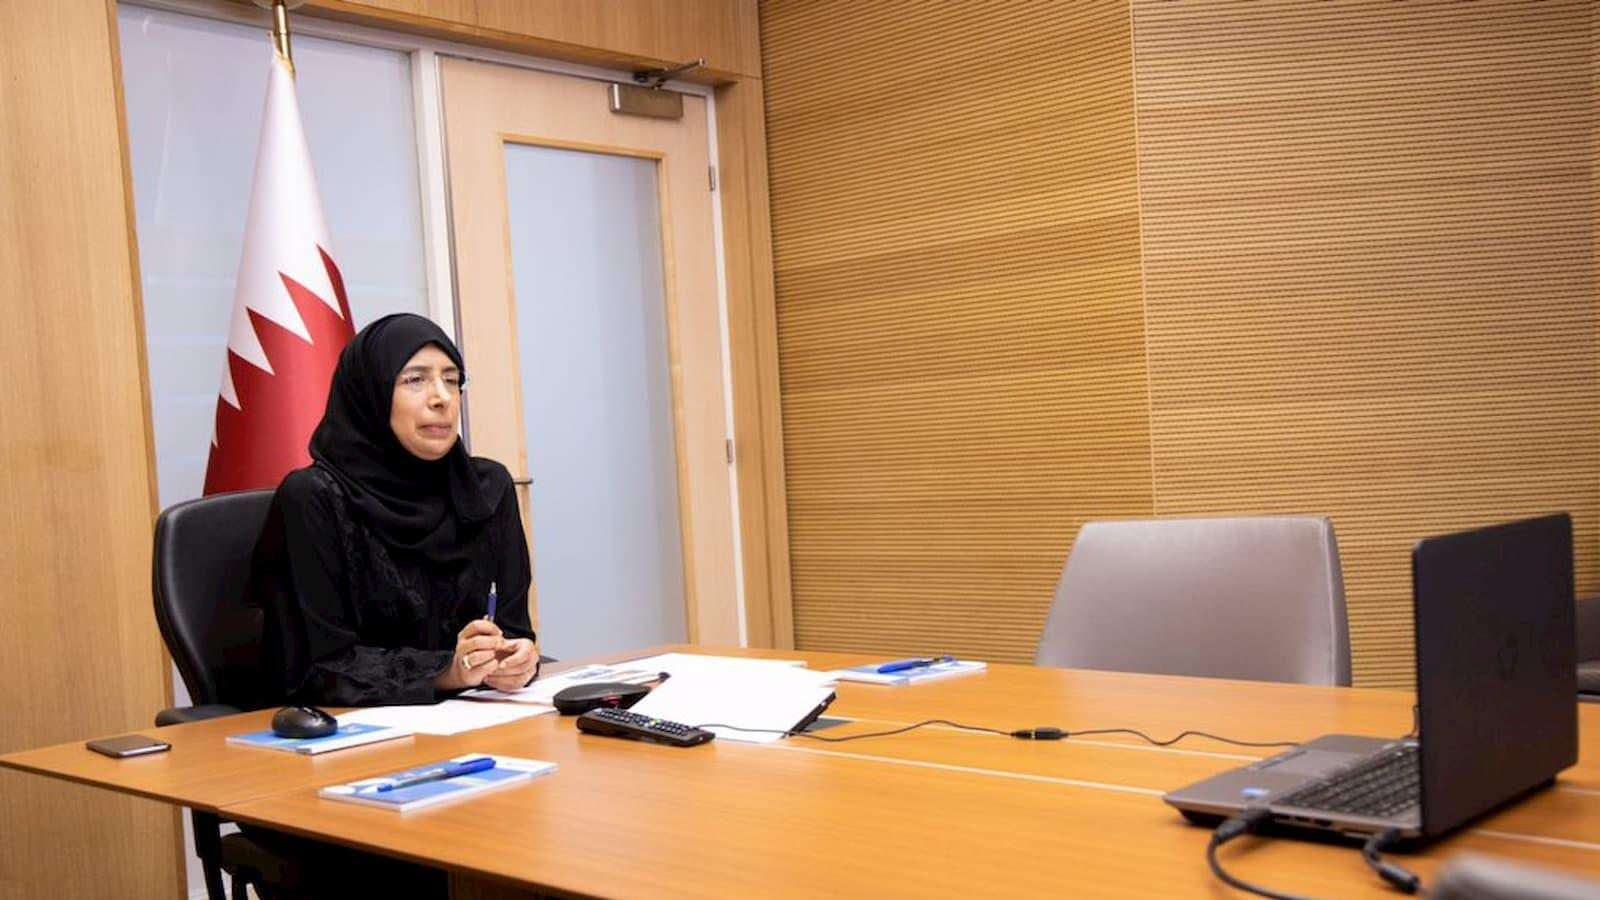 Minister of Public Health presents Qatar's strategy to curb spread of COVID-19 to WHO